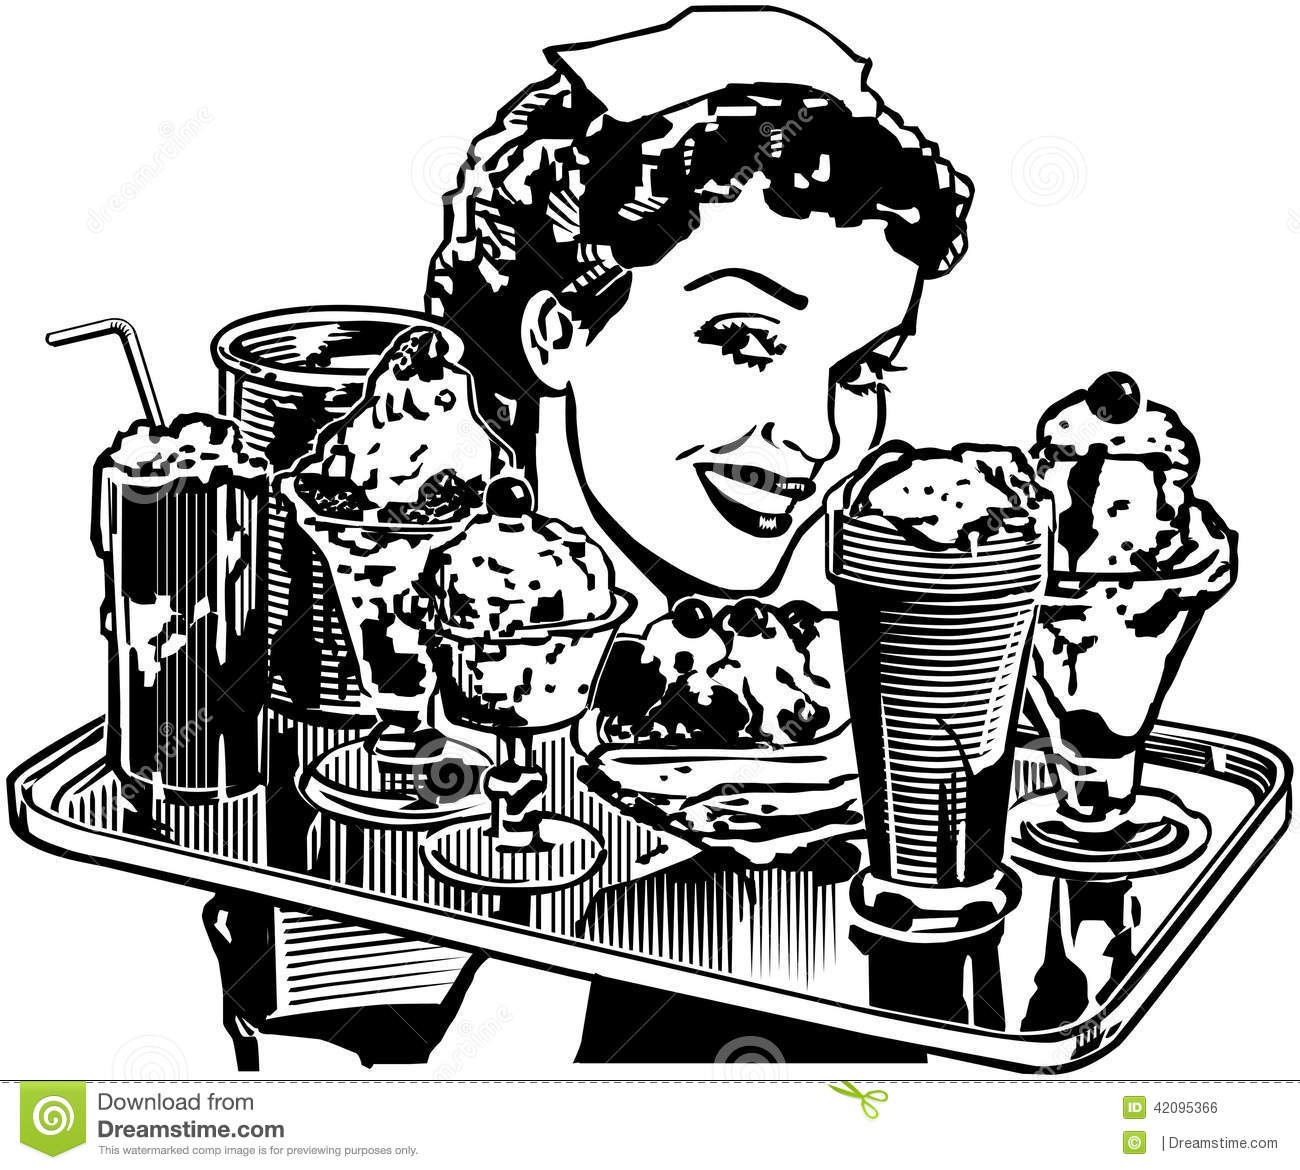 264 Diner free clipart.